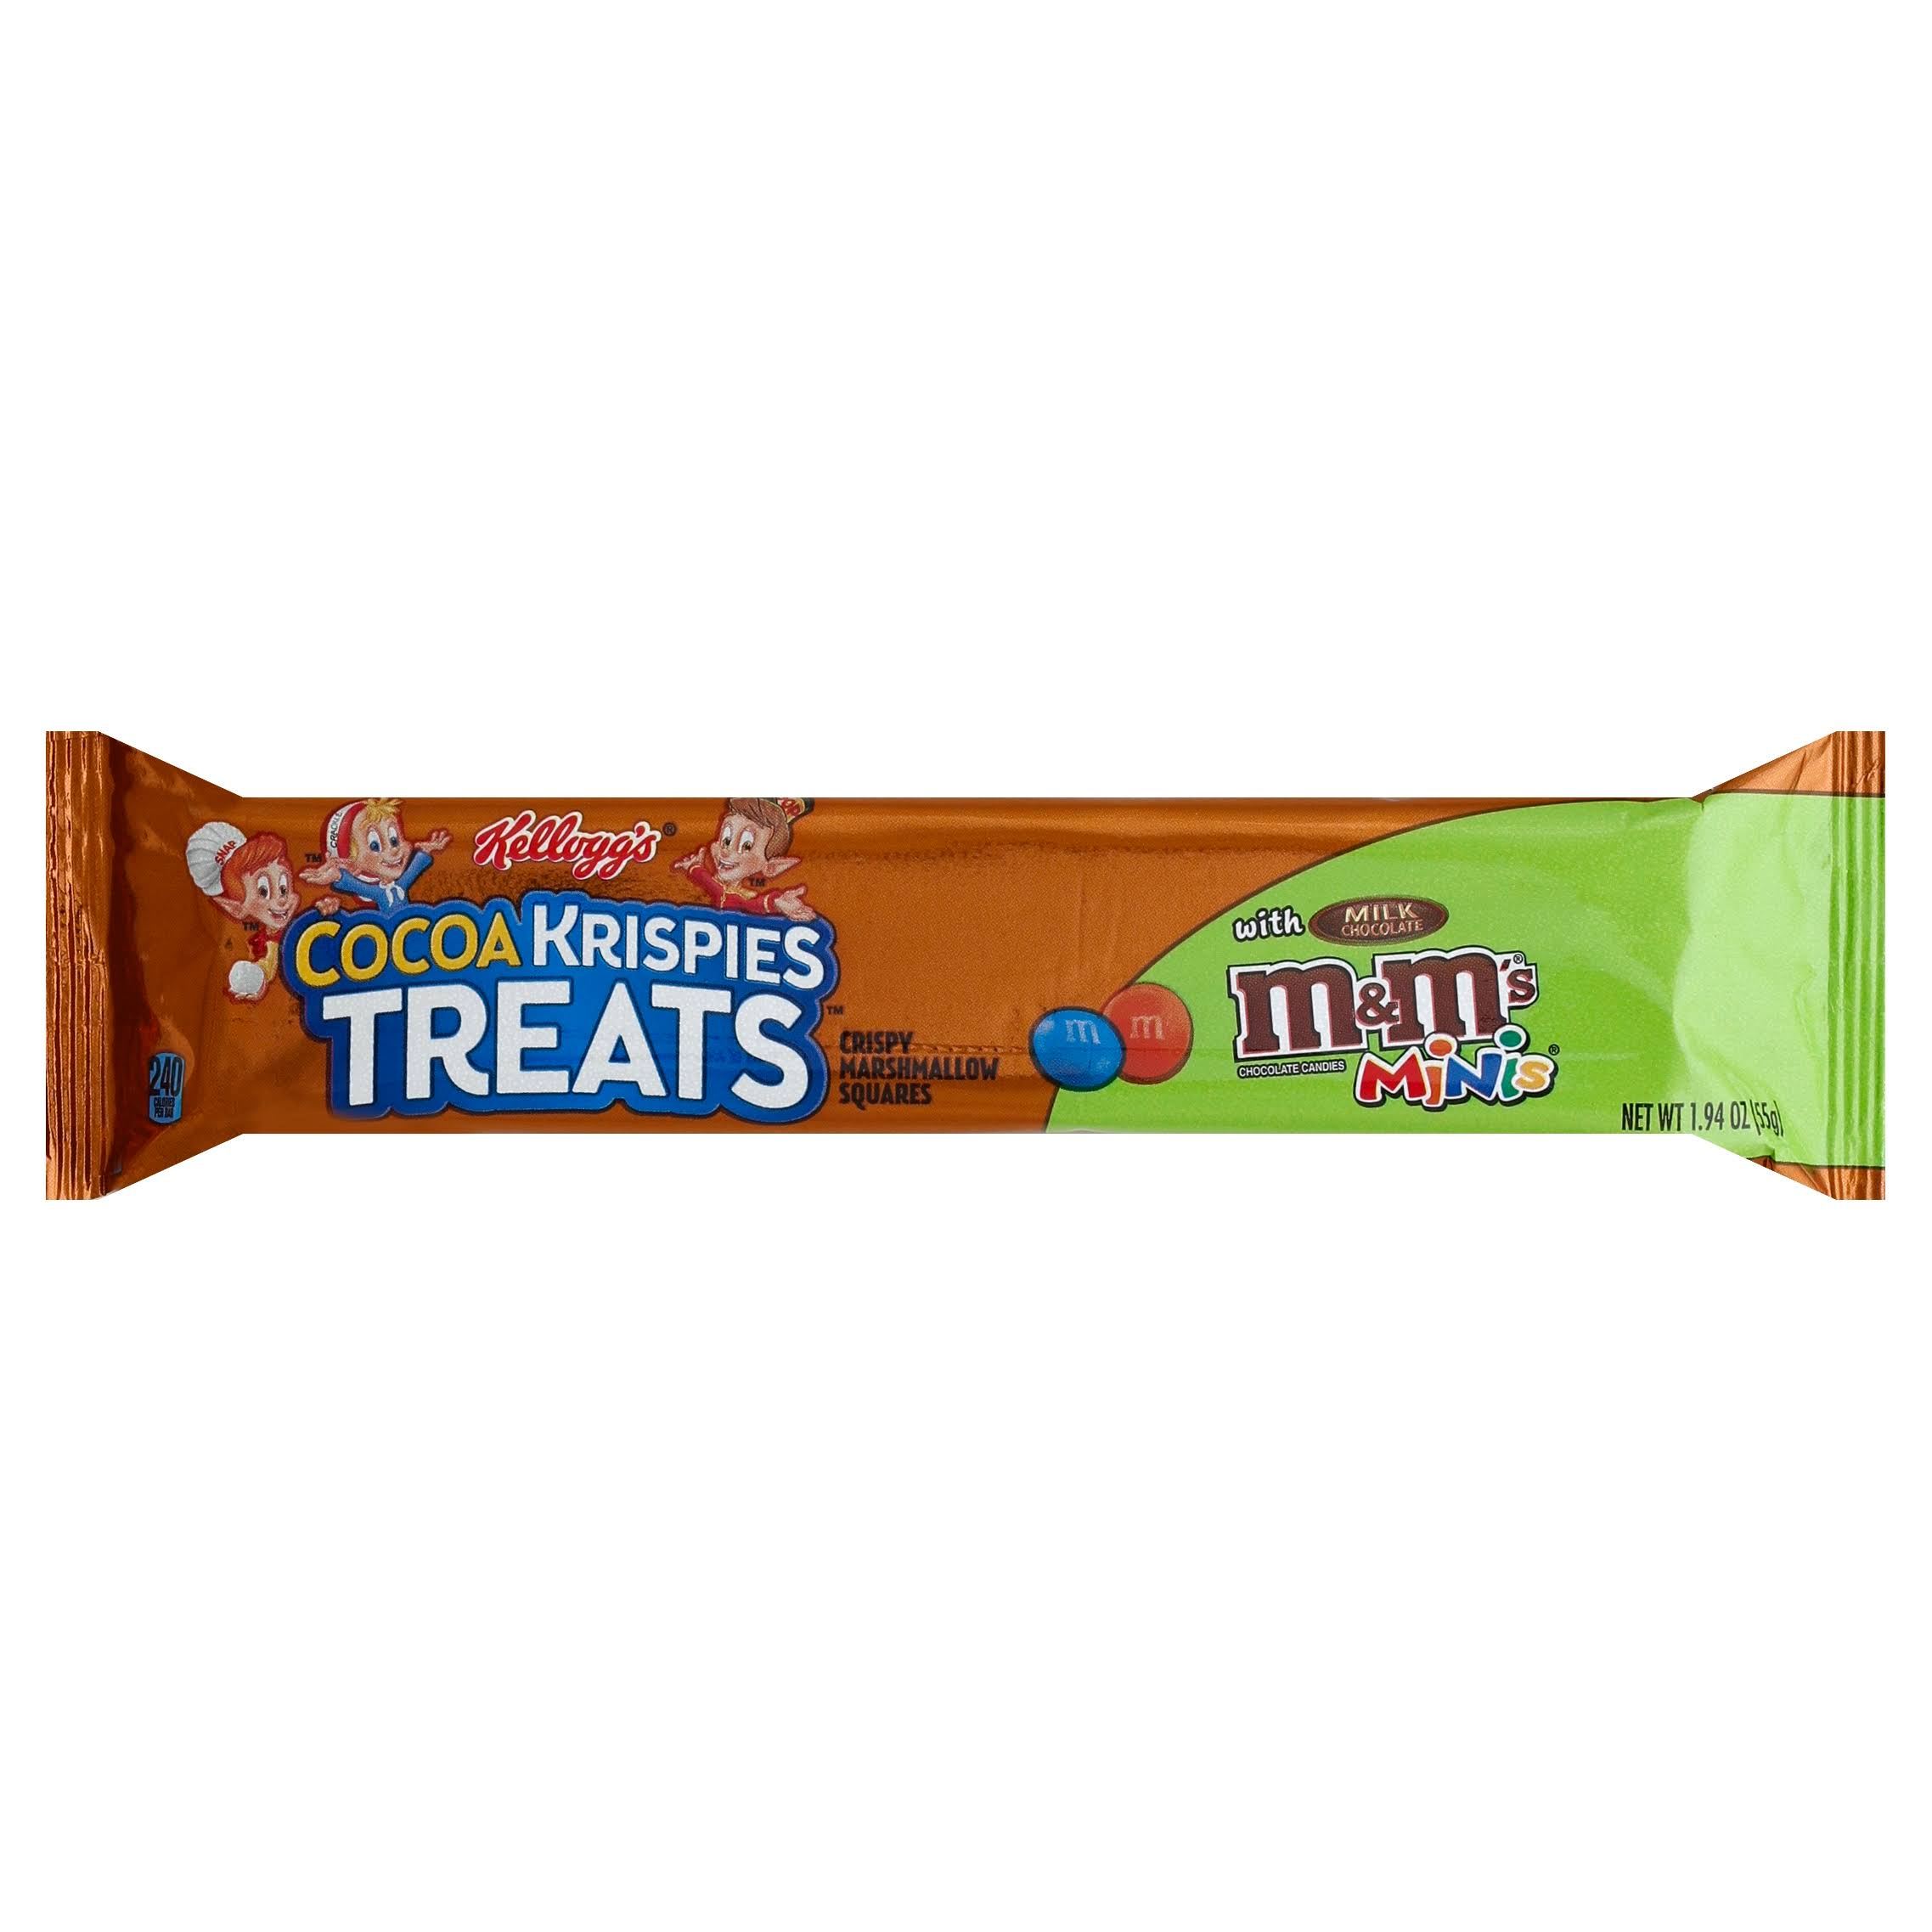 Cocoa Krispies Treats Crispy Marshmallow Squares, with Milk Chocolate M&M's Minis - 1.94 oz